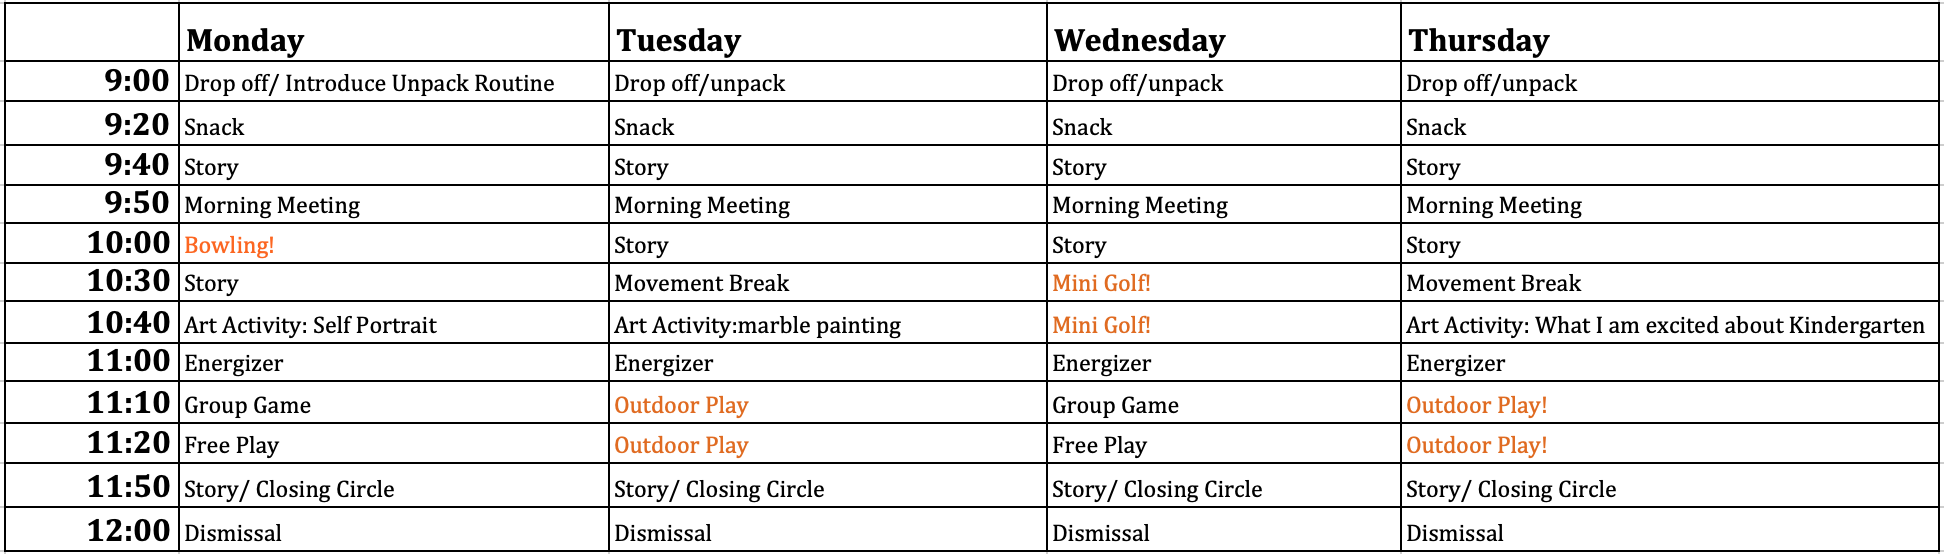 * Please note this is a sample schedule and is subject to change. Based on the day, children will engage in tennis, outdoor play, bowling, and mini golf on the property!